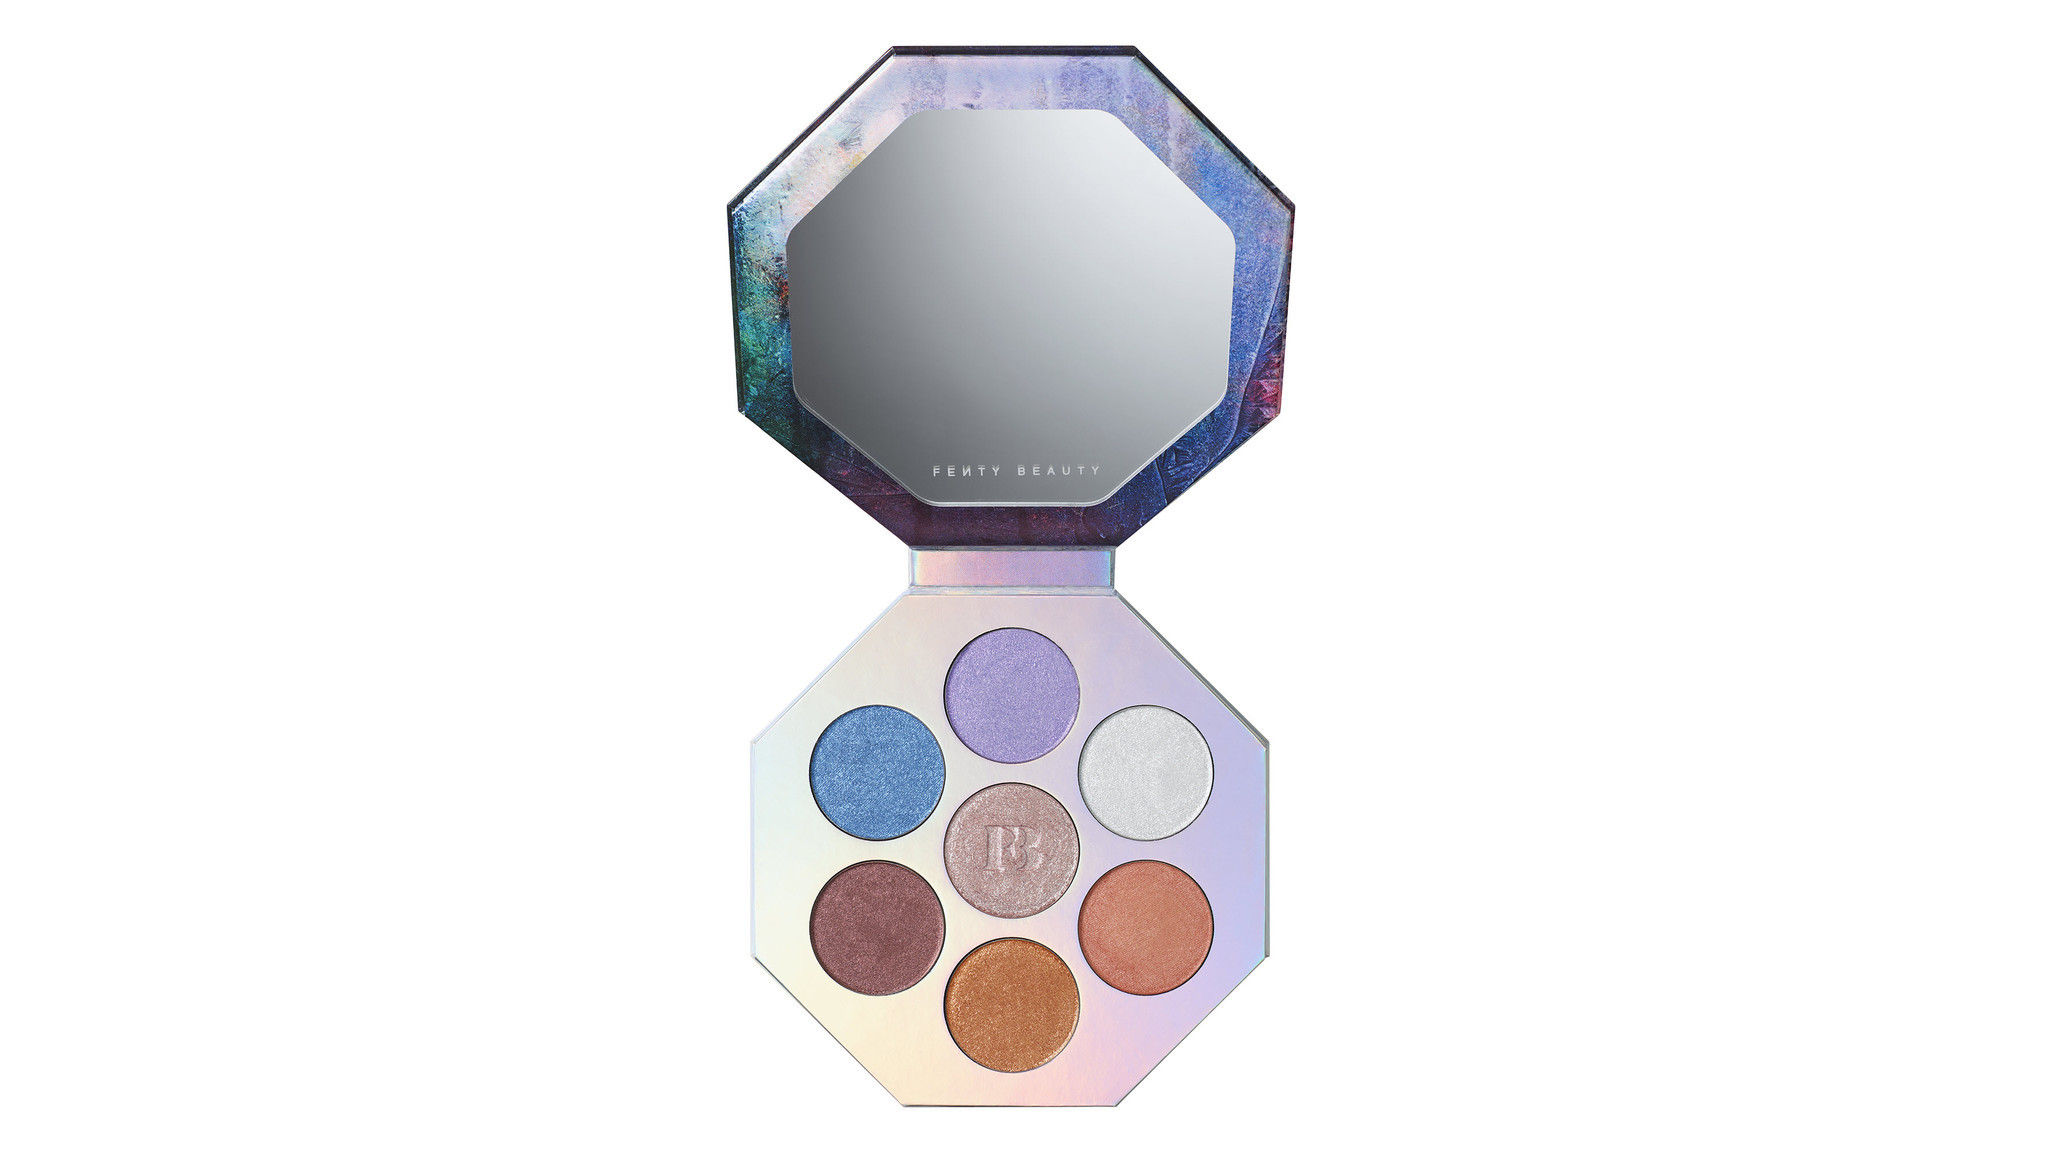 Fenty Beauty by Rihanna Killawatt Foil Freestyle highlighter palette, $54 at Sephora stores and seph